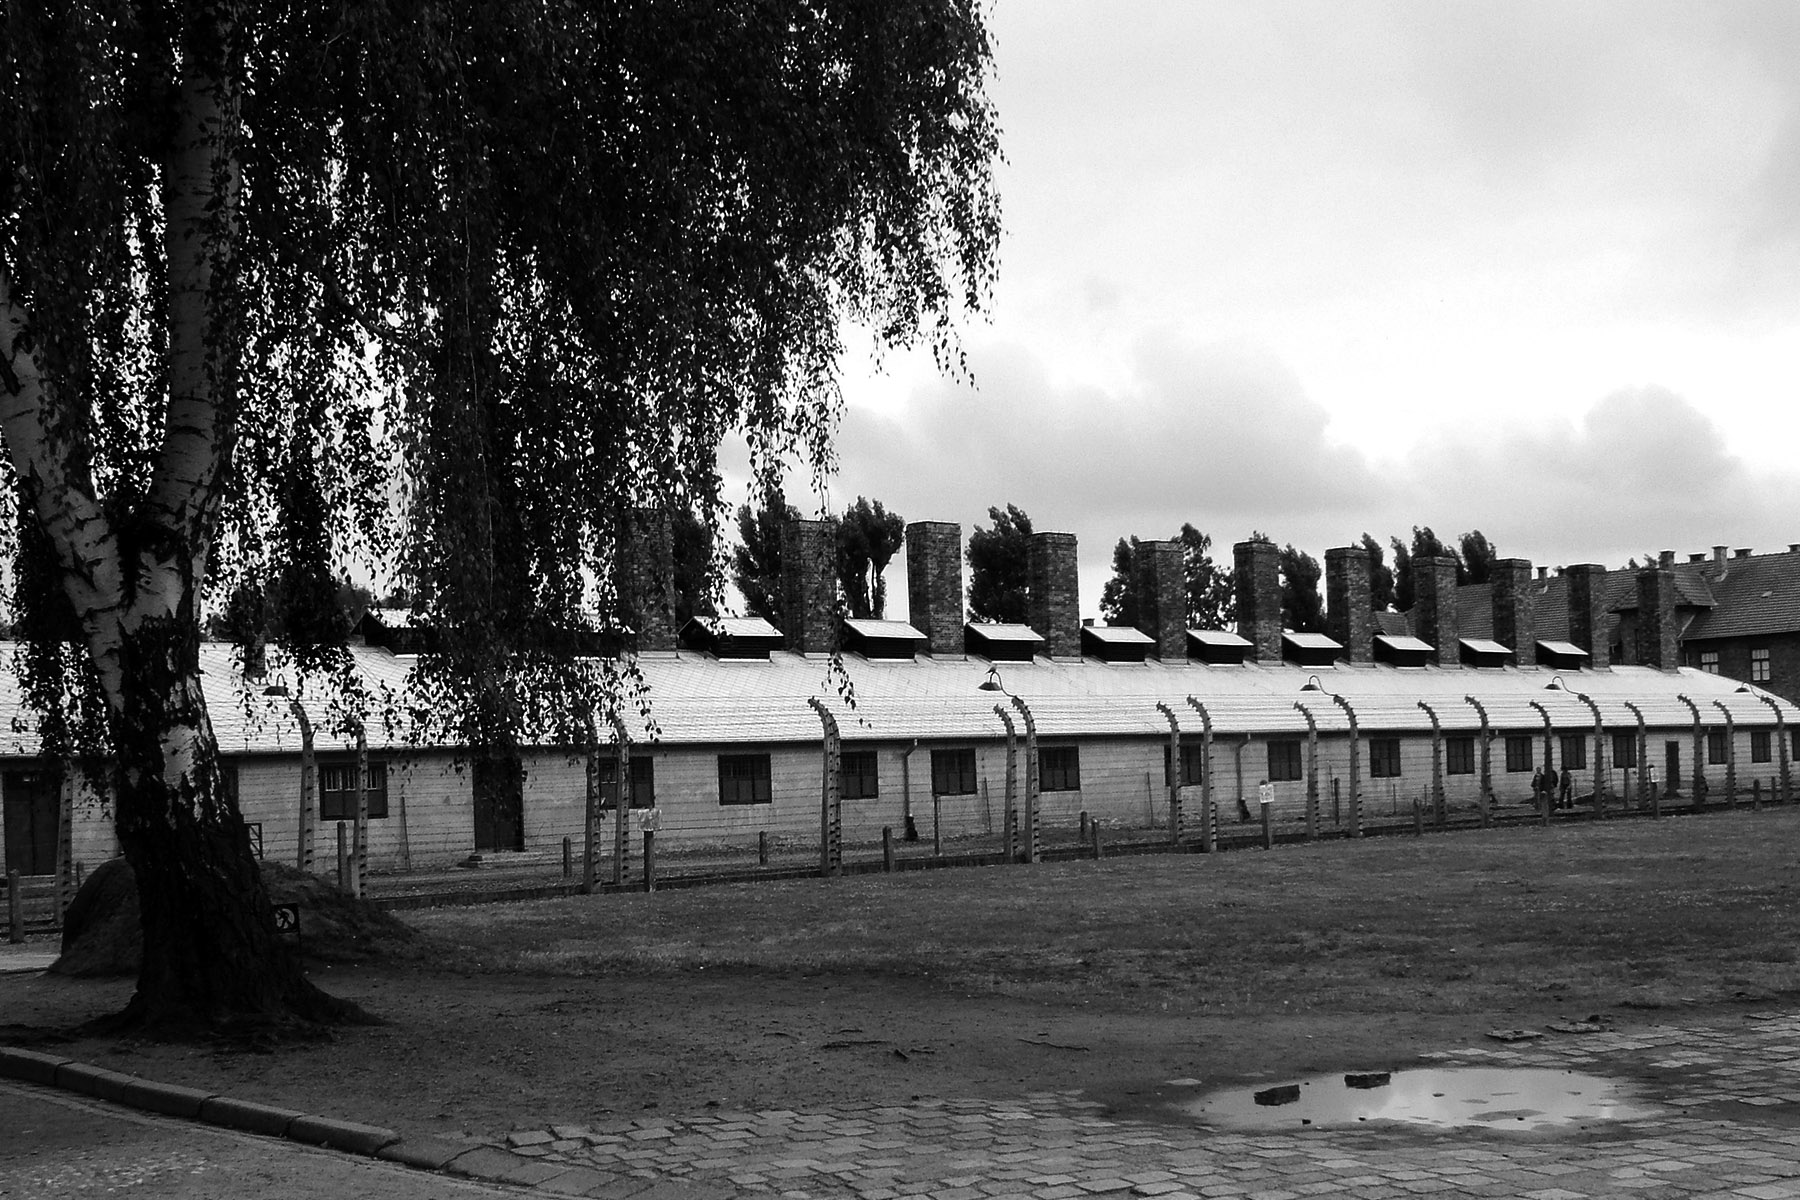 Auschwitz 1 – accommodation huts